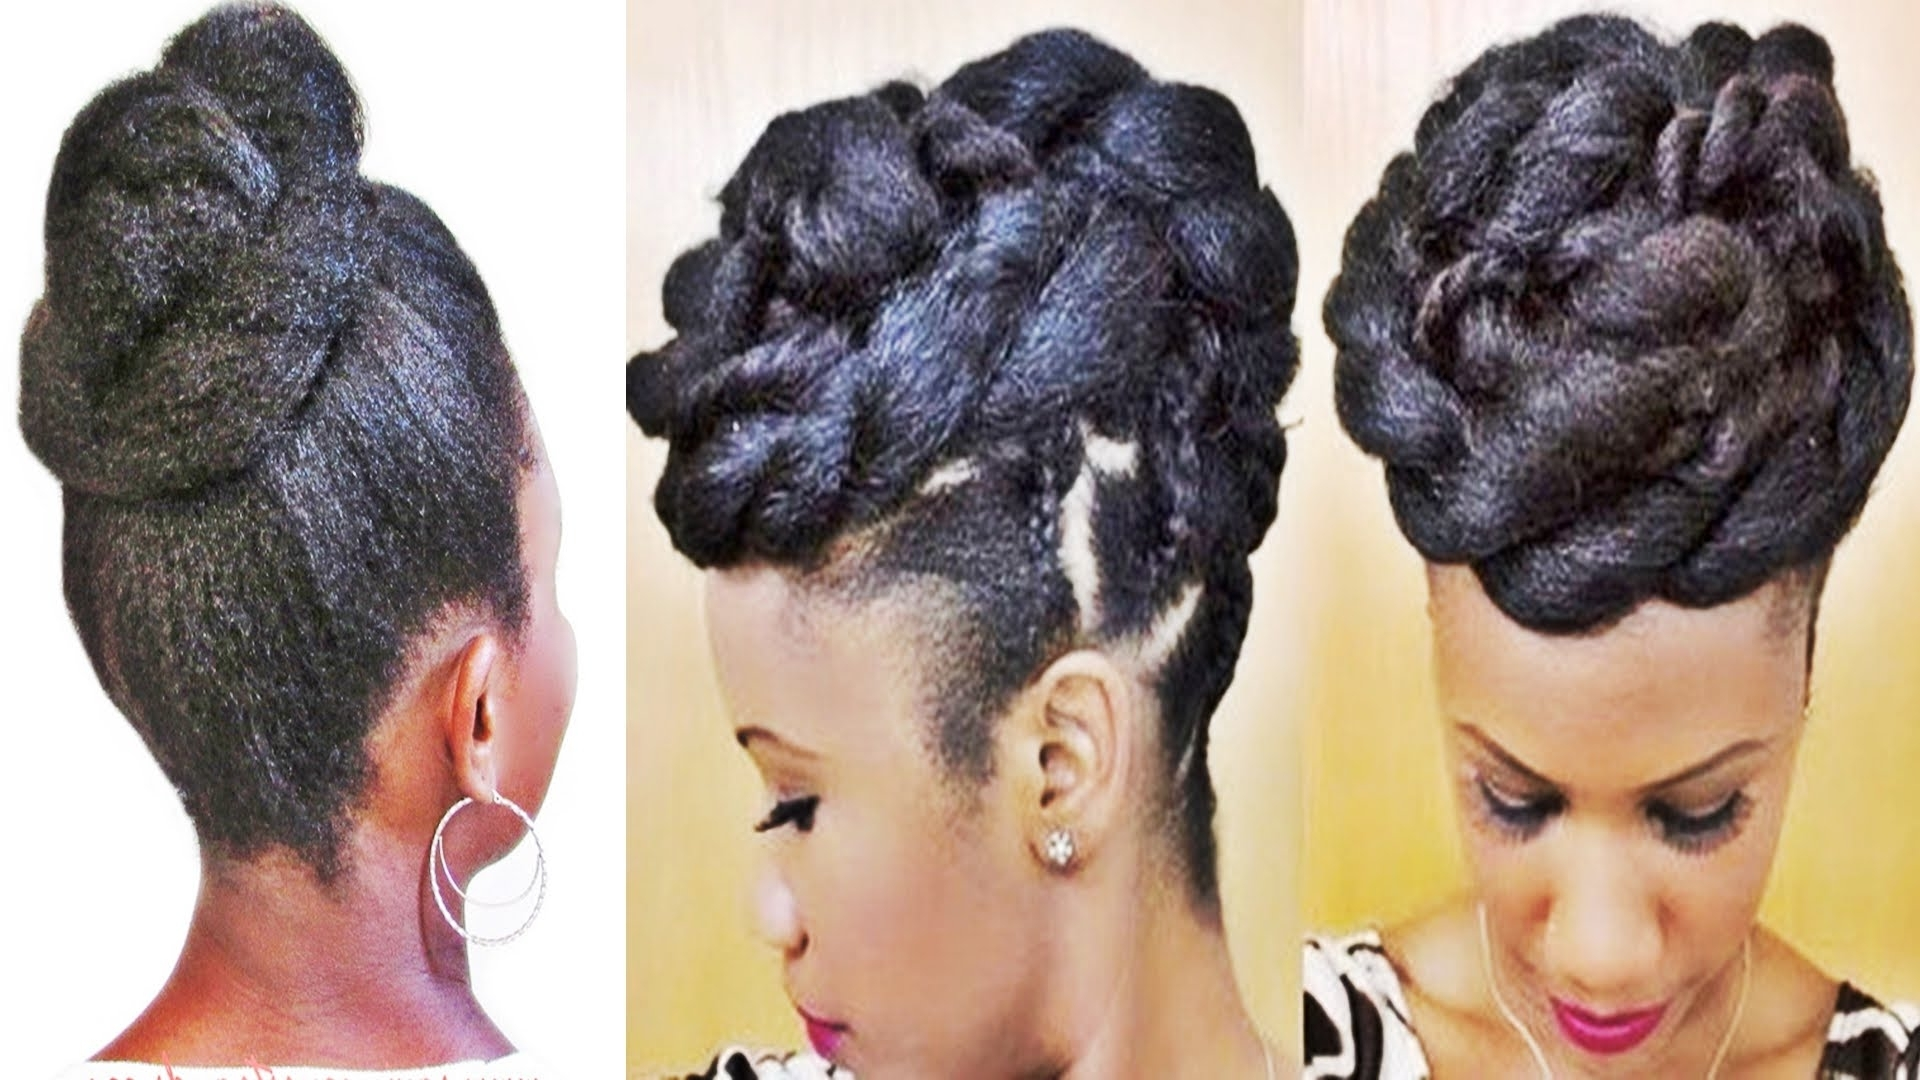 Widely Used Braided Goddess Updo Hairstyles For Braids And Twists Updo Hairstyle For Black Women – Youtube (View 15 of 15)